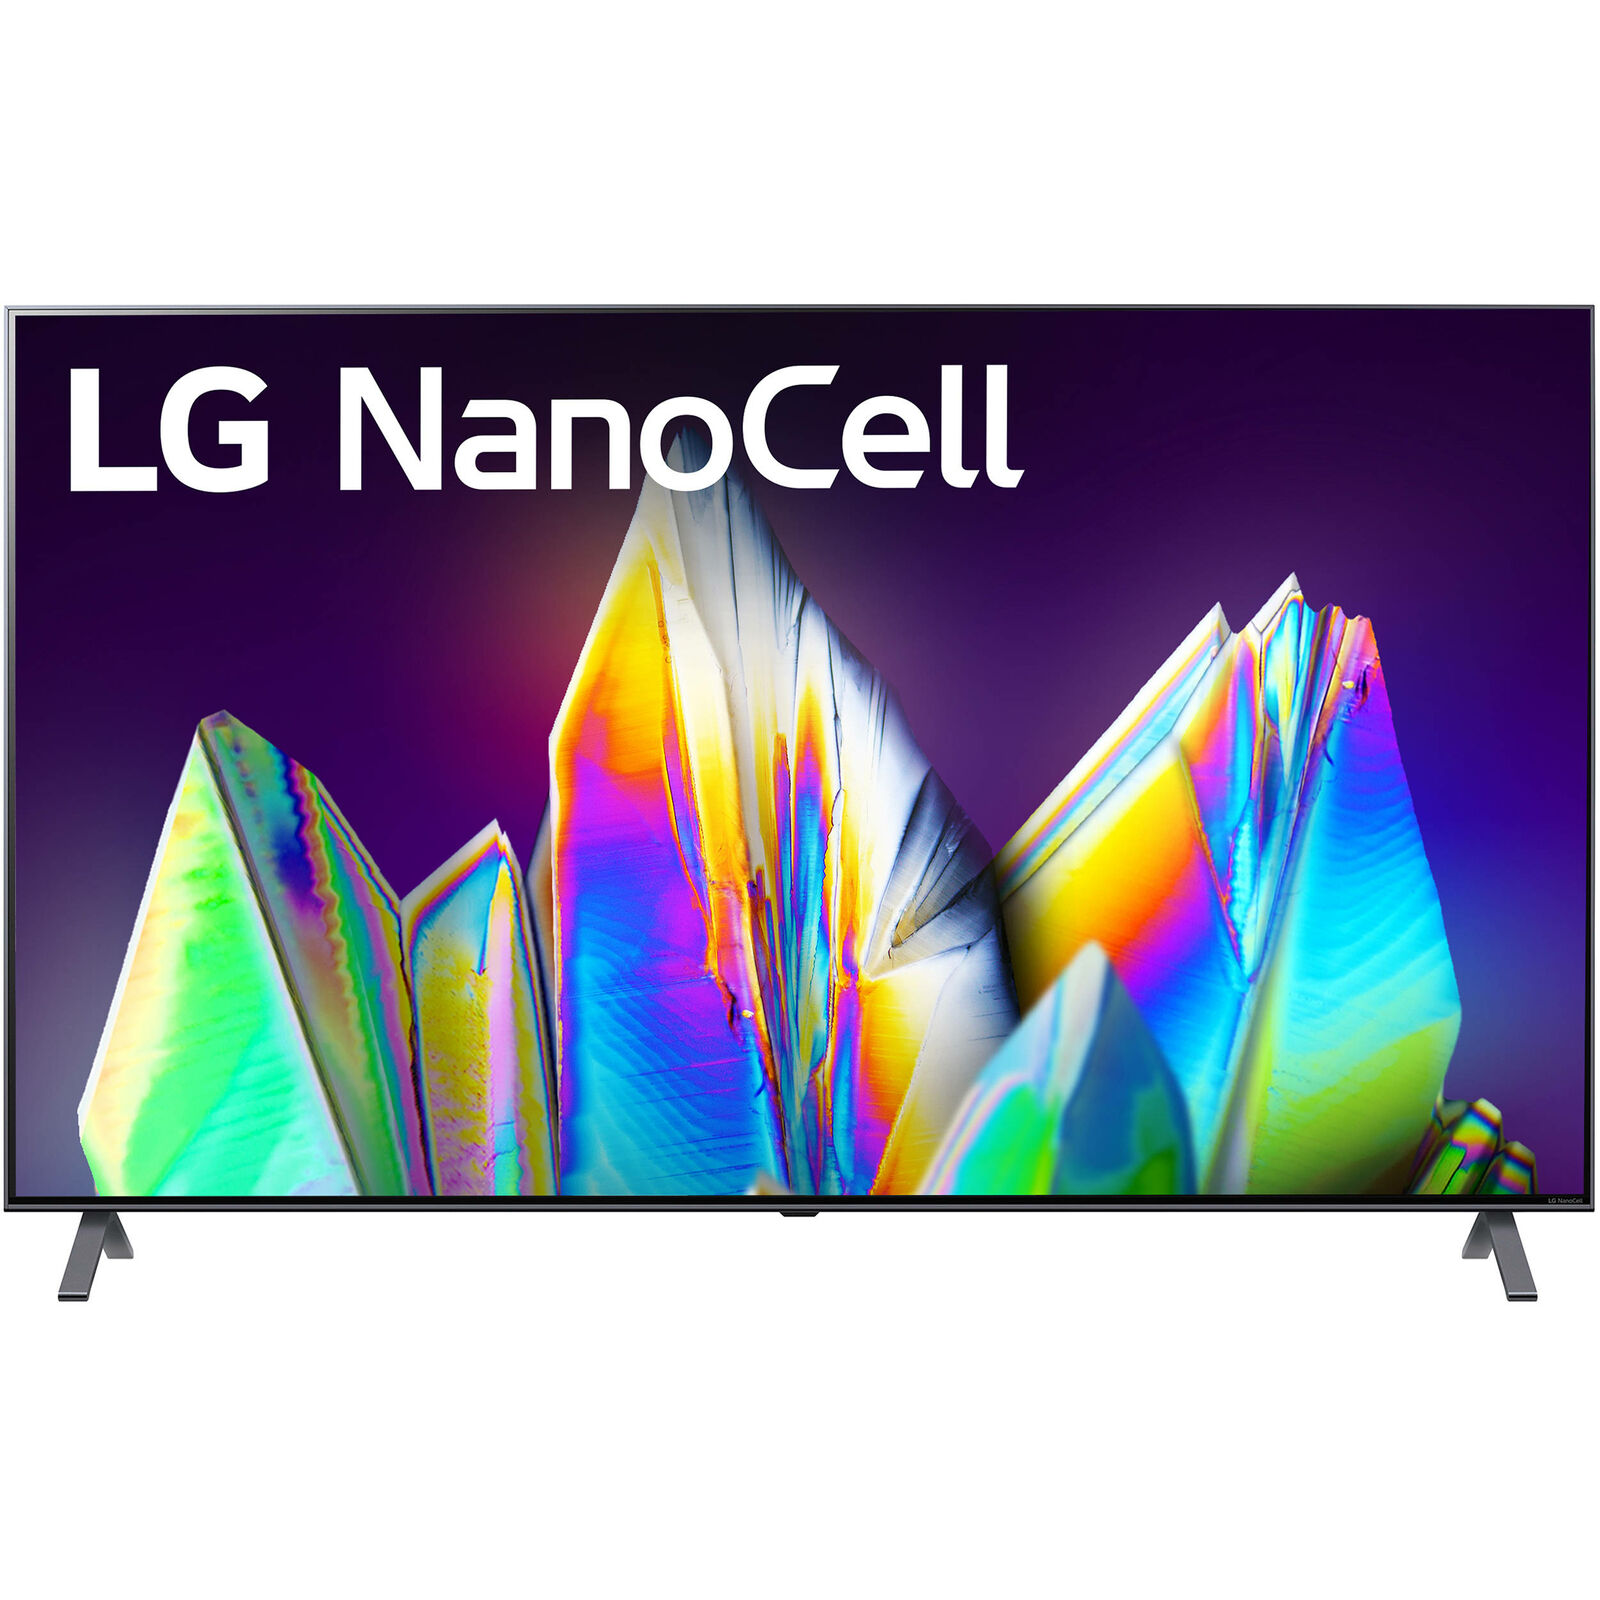 LG 65NANO99 65 NanoCell 99 Series 8K Smart UHD TV - 2020 Model. Available Now for 2796.99